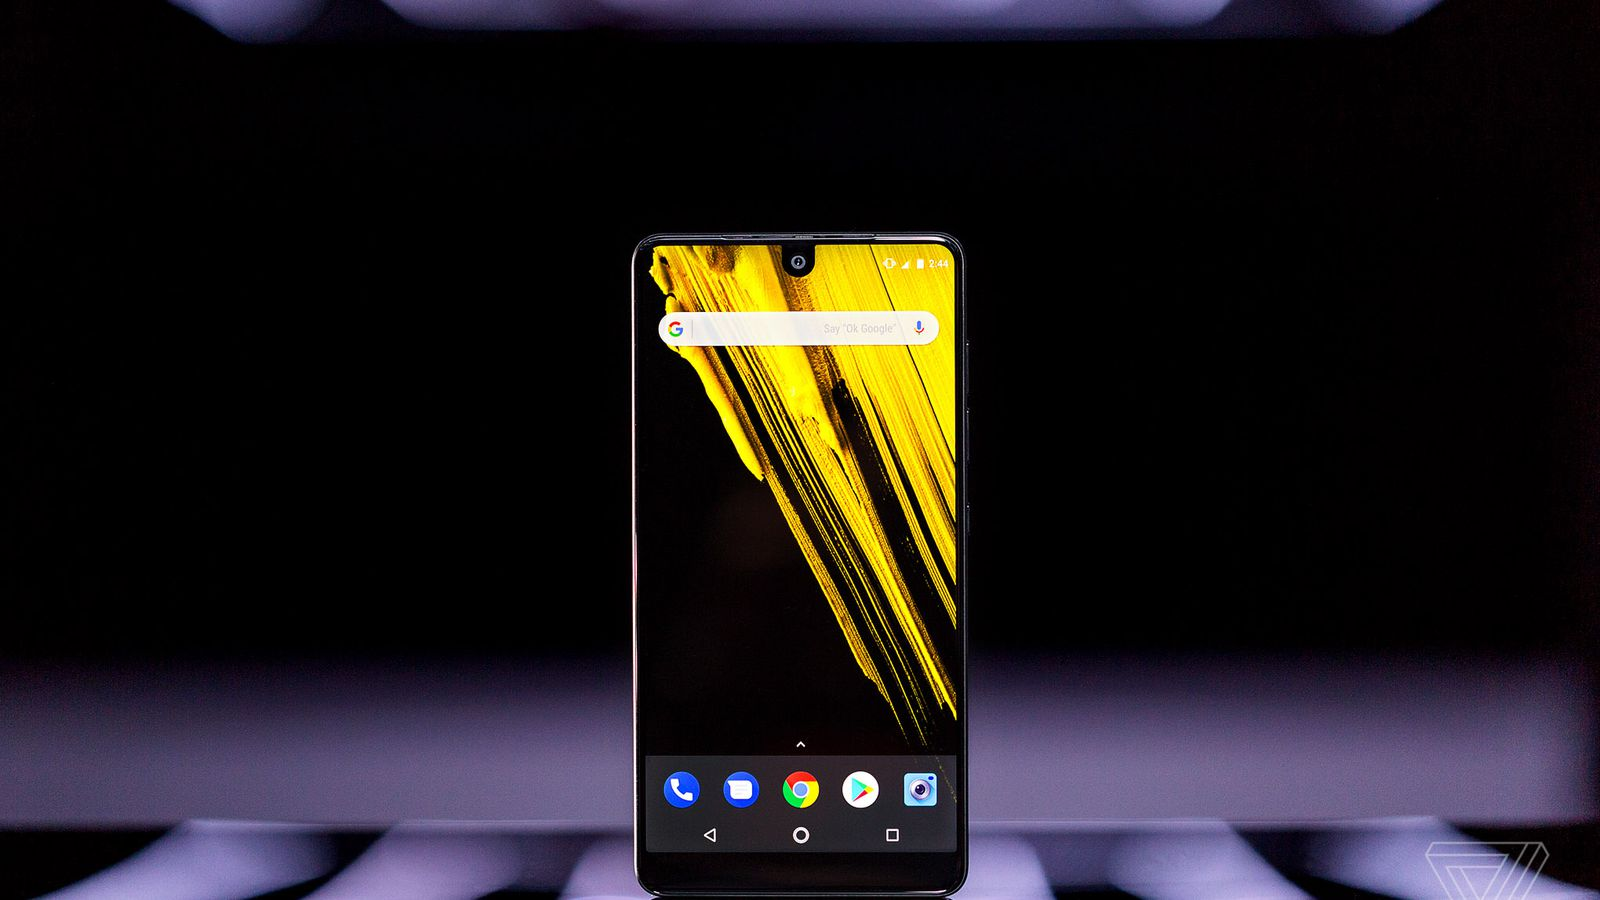 The Essential Phone just started shipping to buyers